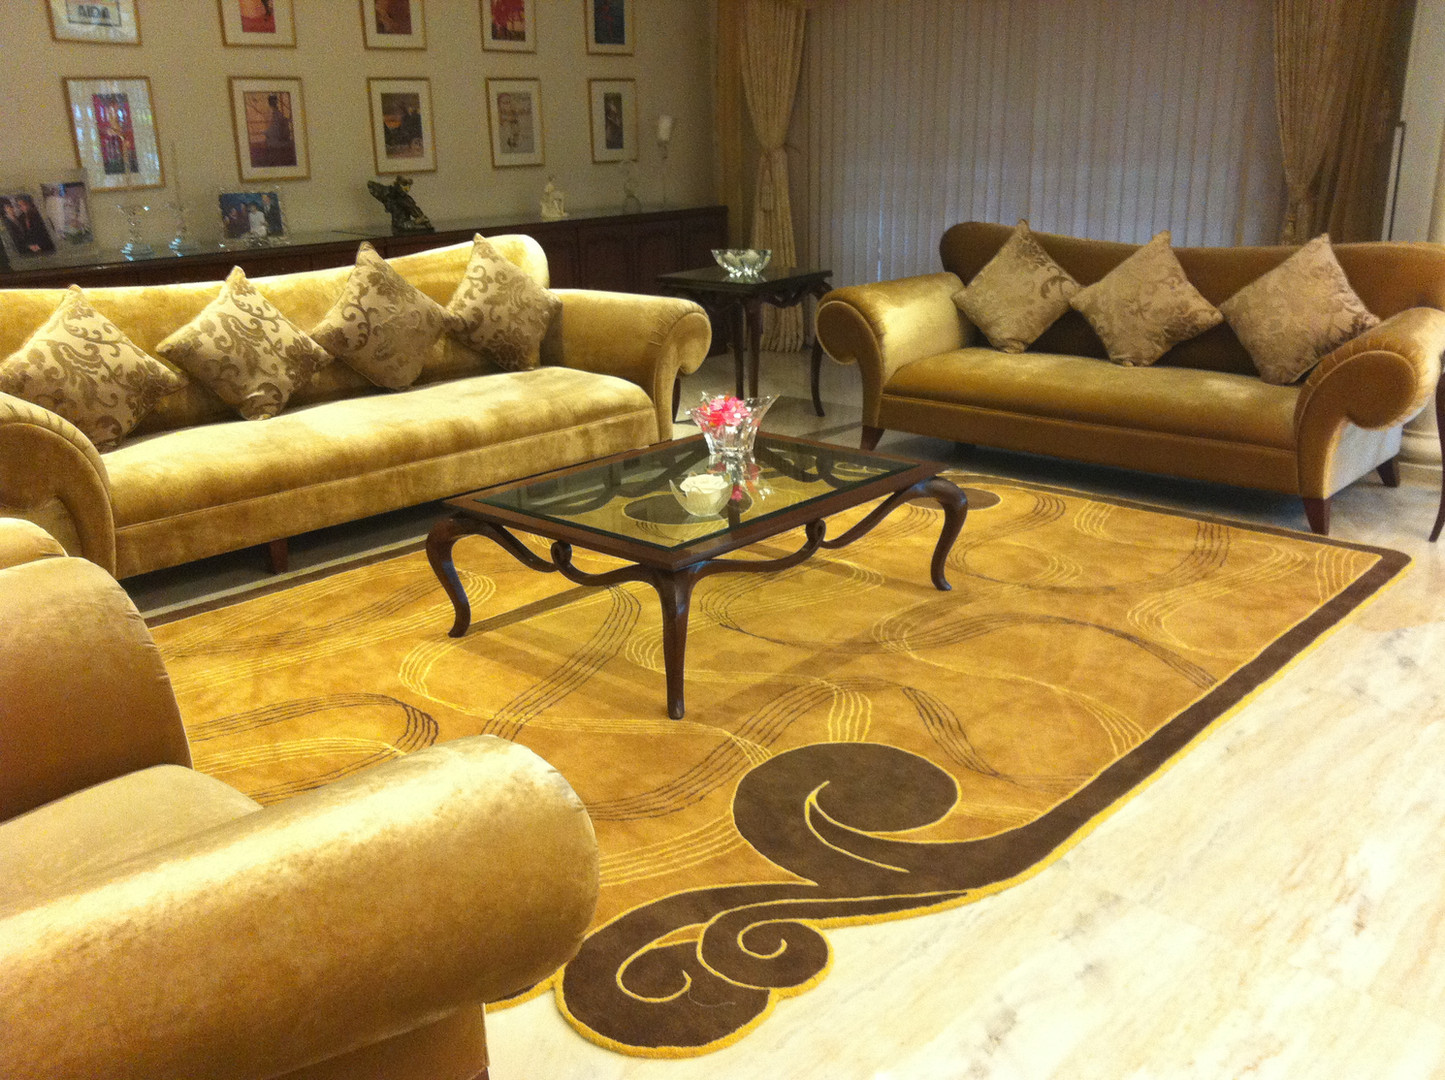 Hanf Tufted Carpet for a Musician in Pune